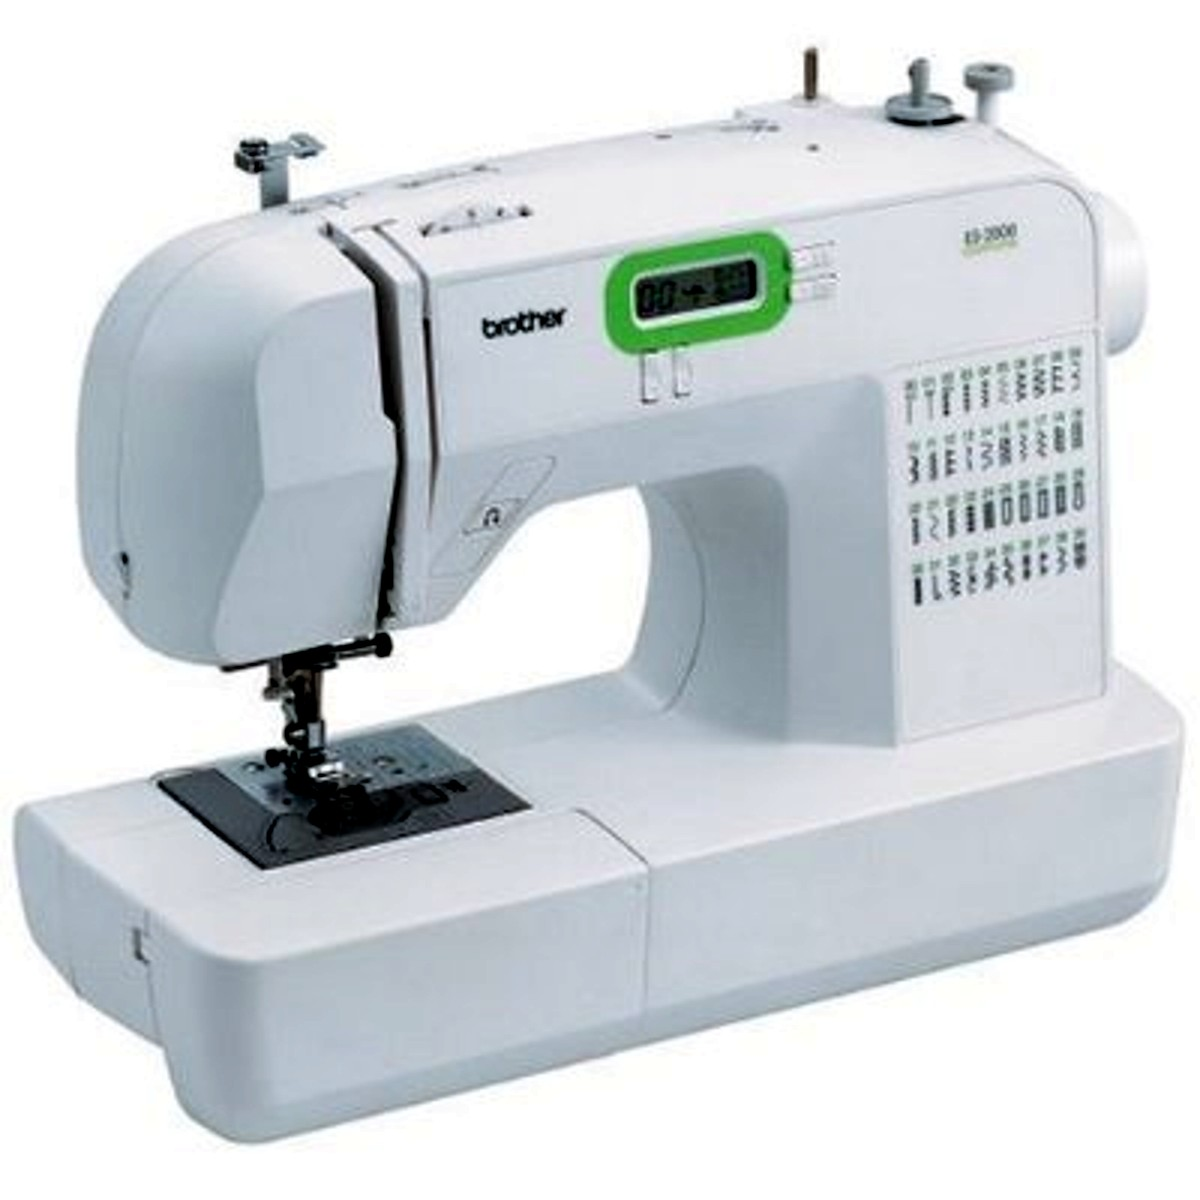 Brother Es2000 Sewing Machine